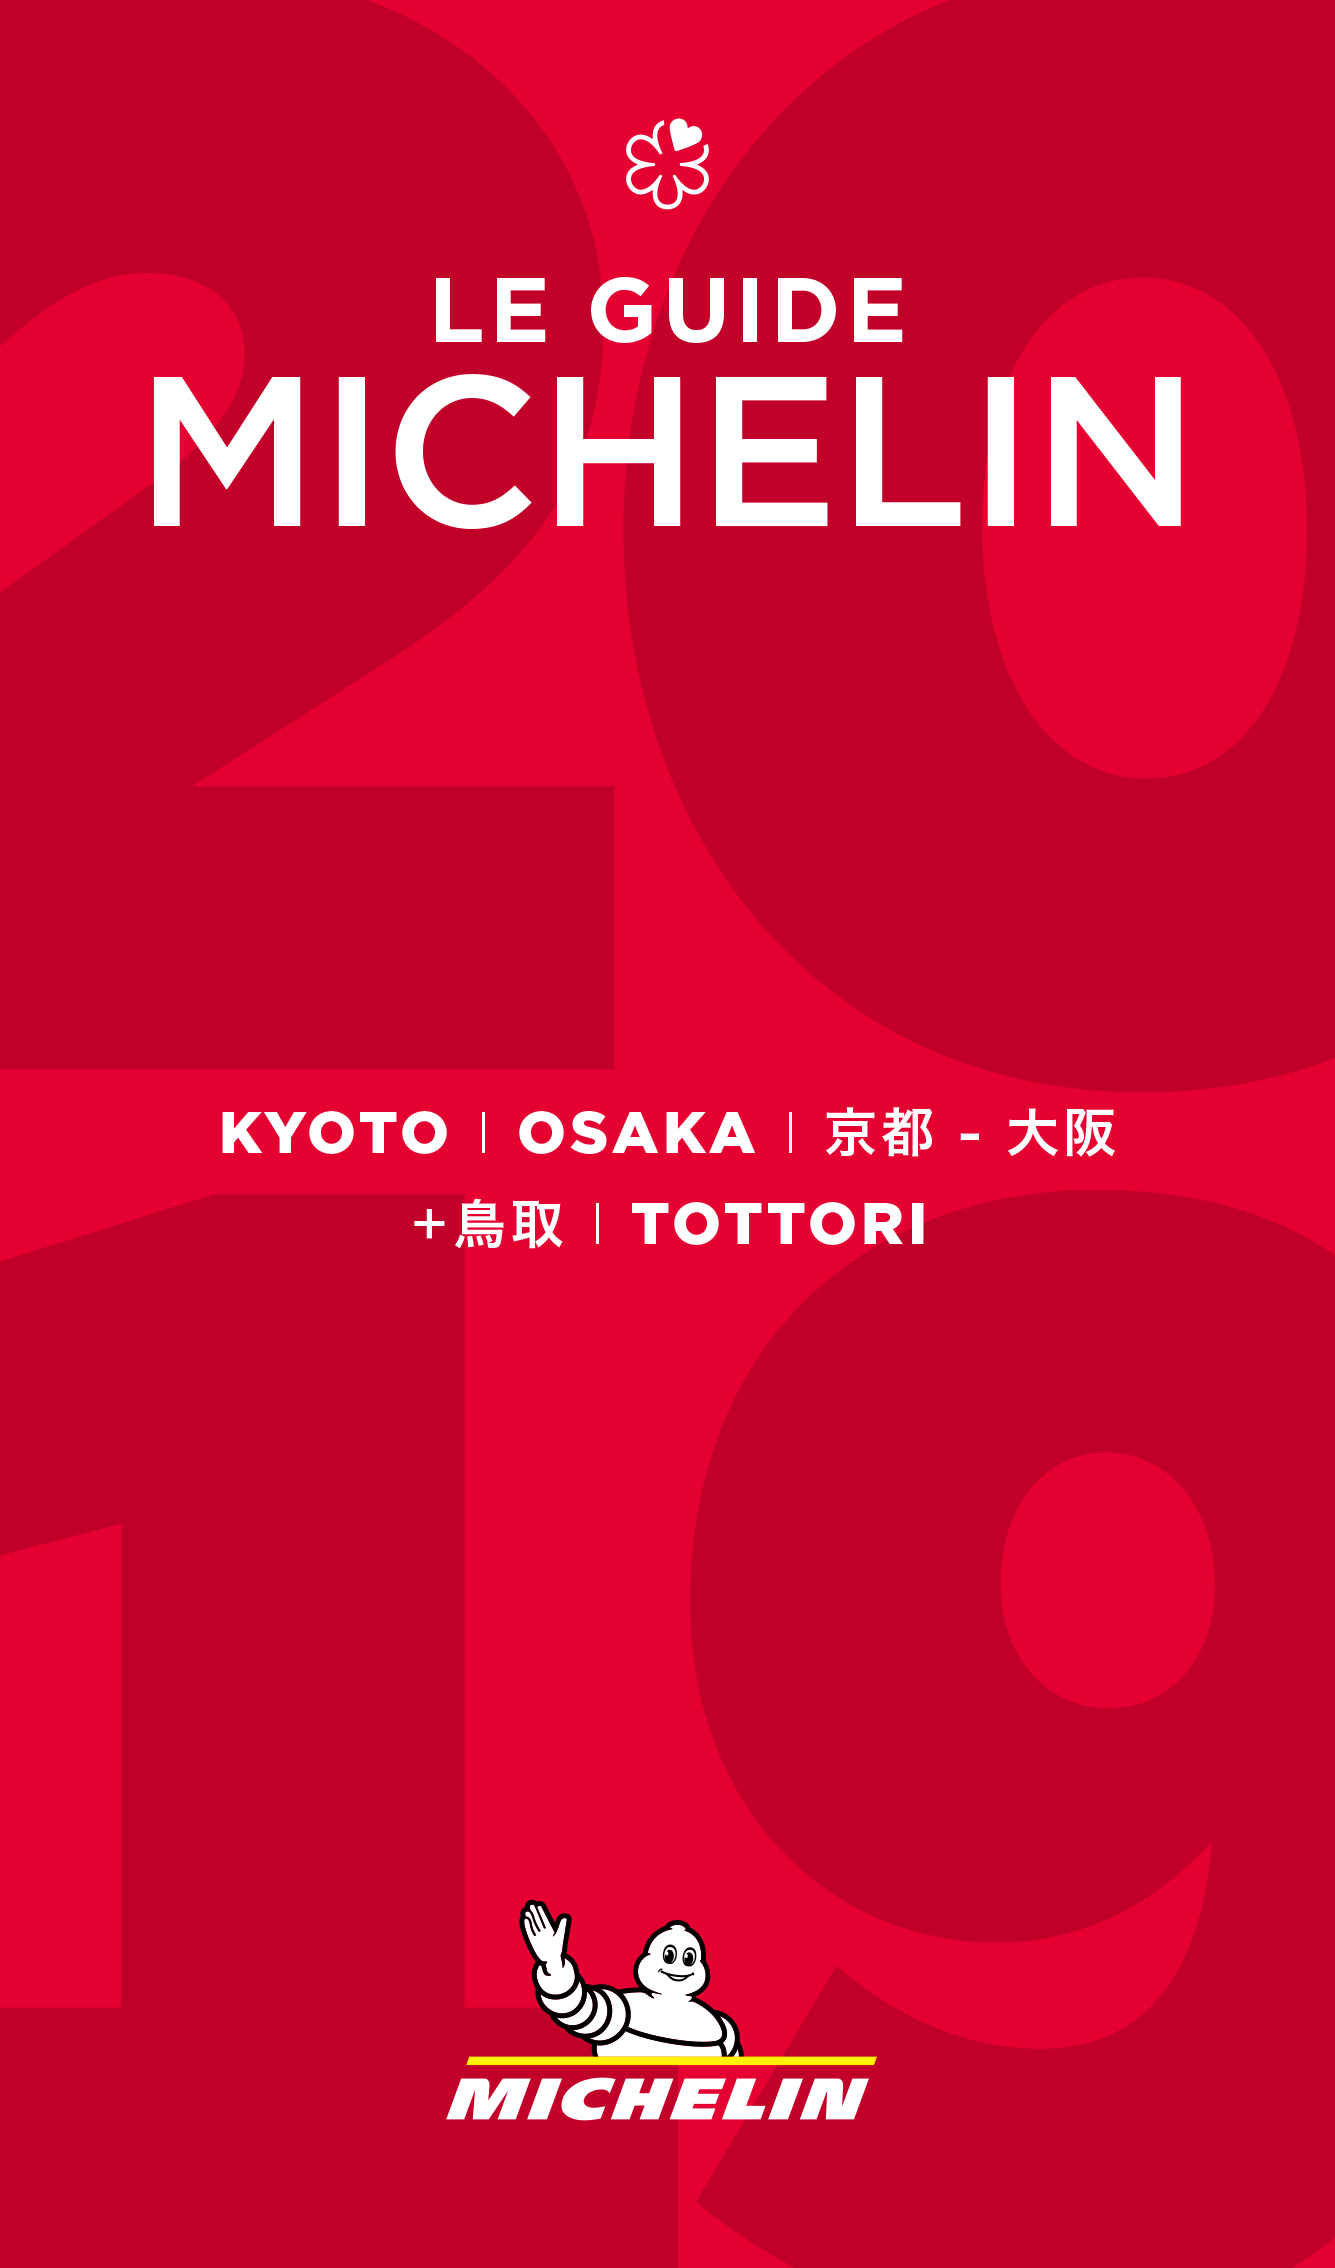 IMG: Featured in the Michelin Guide Kyoto Osaka Tottori 2019